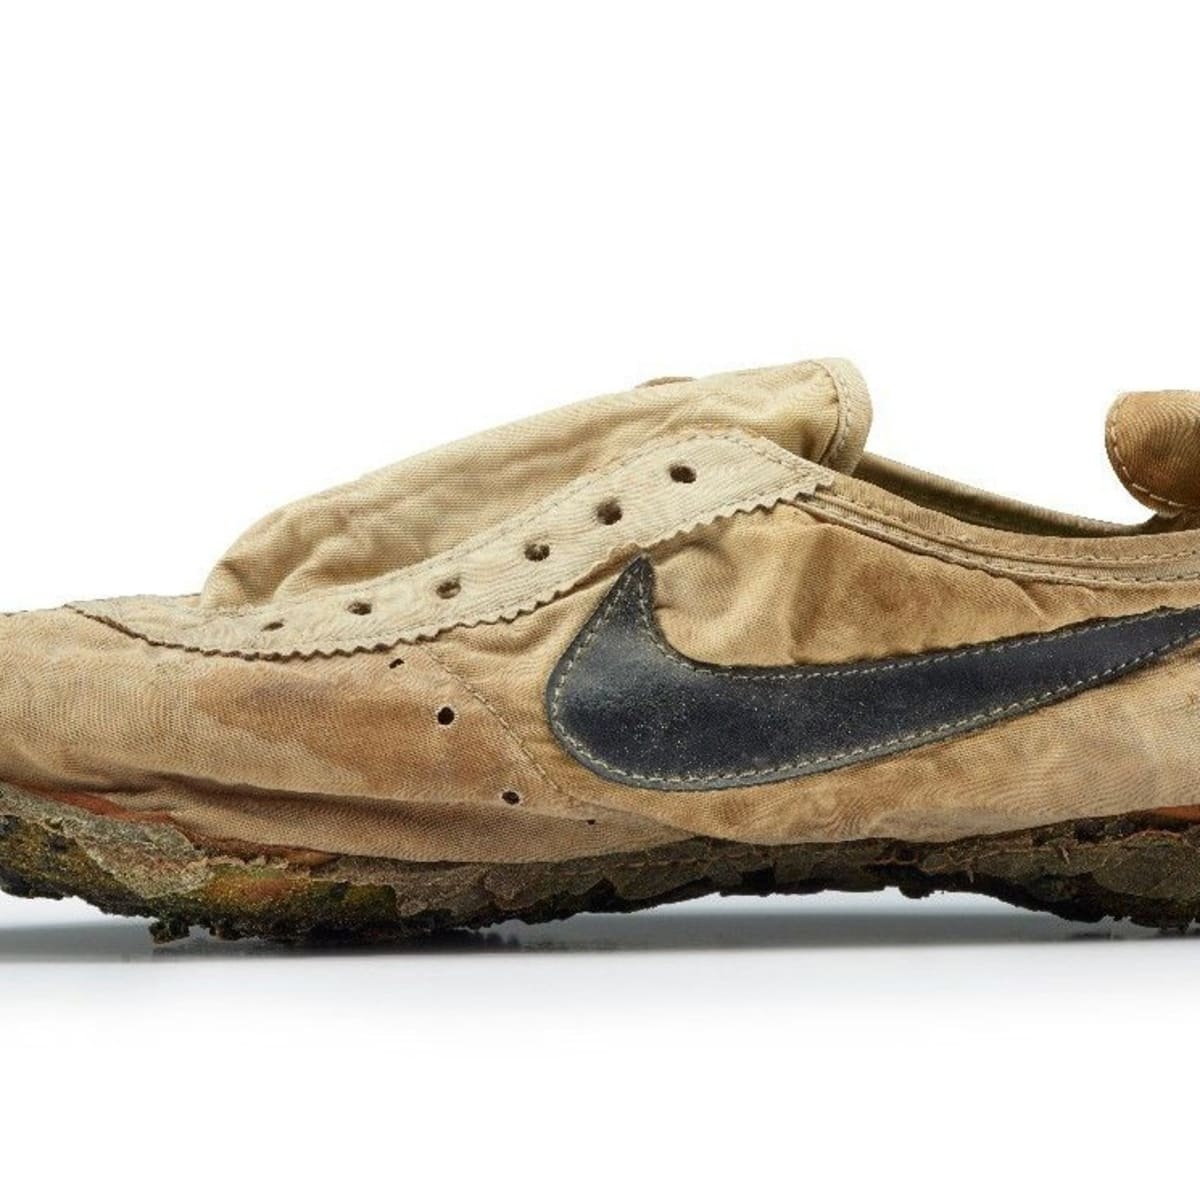 Vintage Nike Waffle from 1972 Olympic